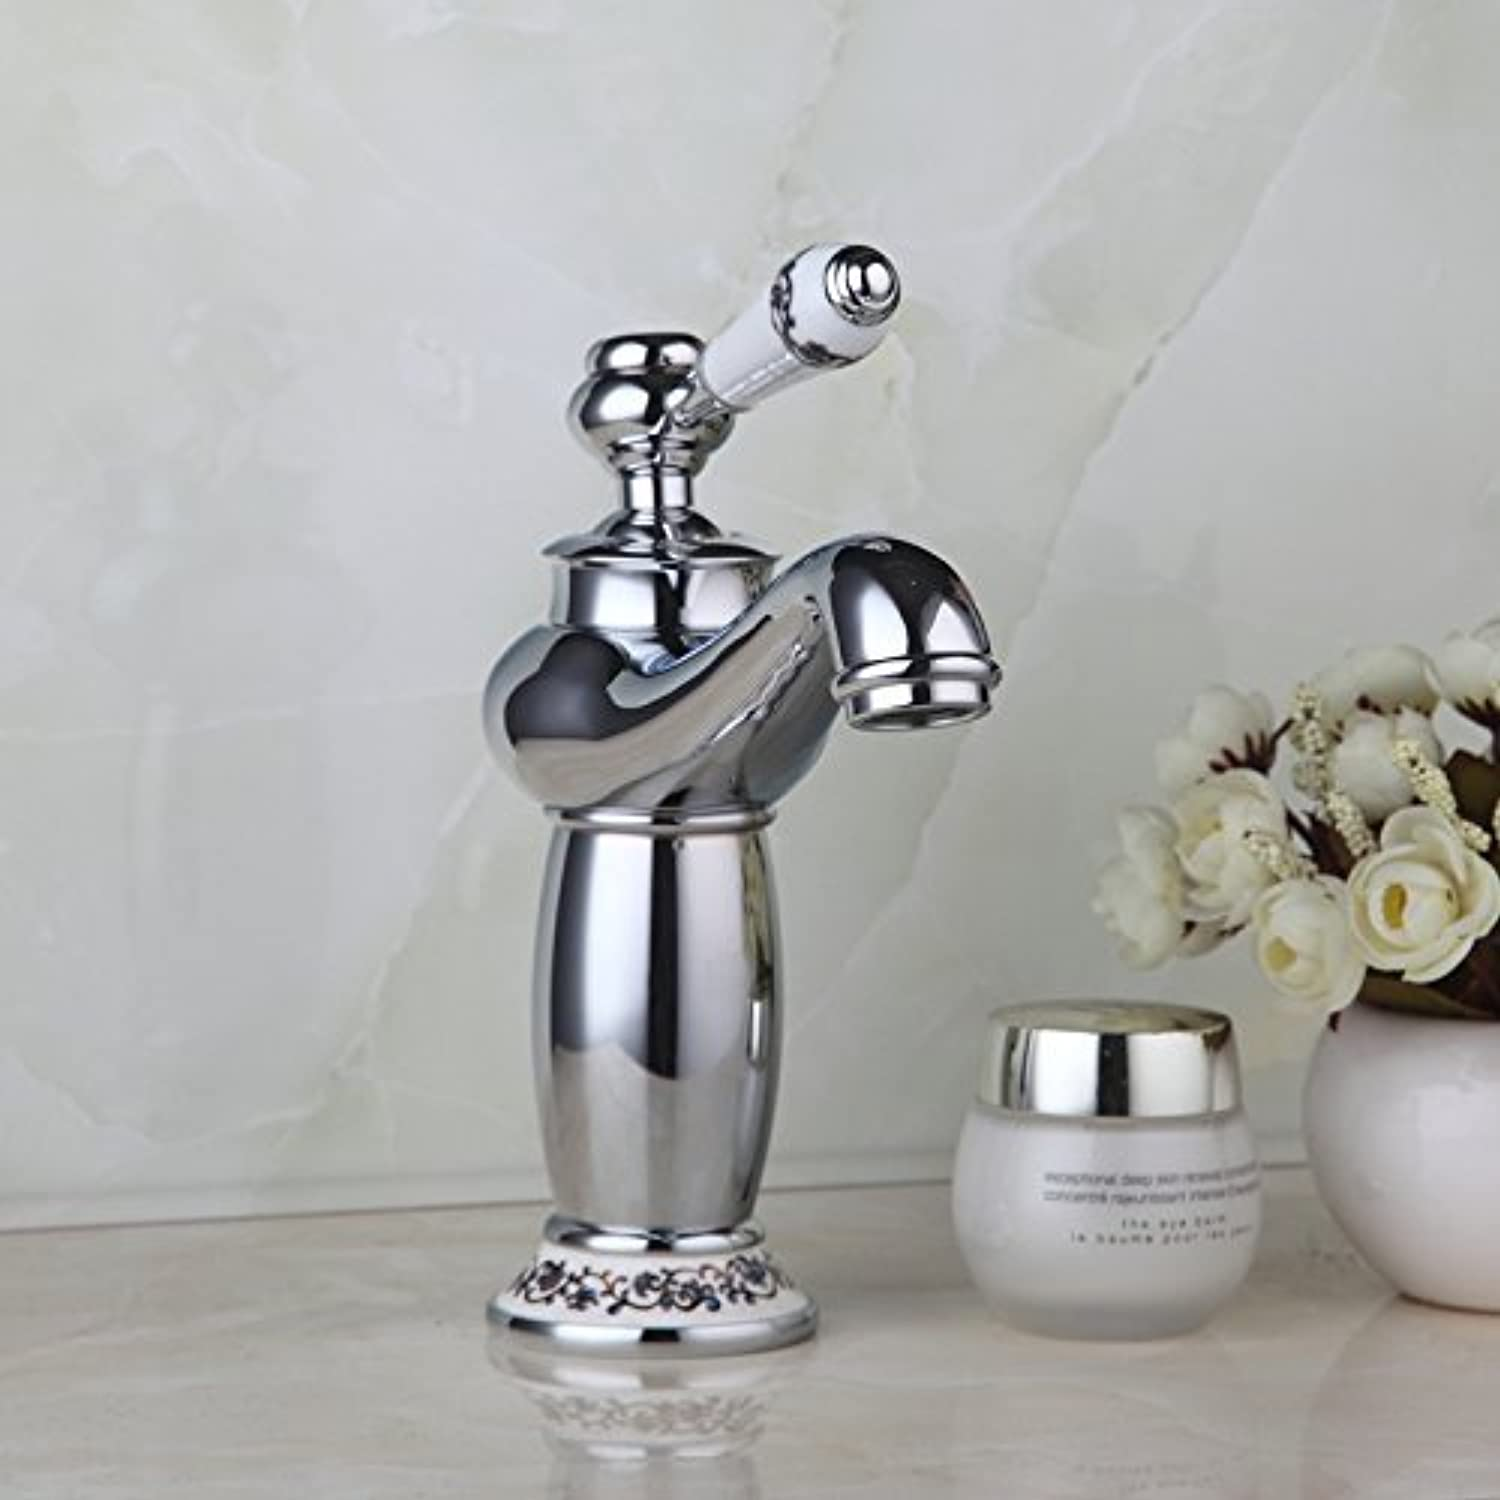 Polished Chrome Bathroom Fitting Money from The Bridge of mounting of The Ceramic end of Bath Rooms Sinks Sinks taps and Mixer taps and valves